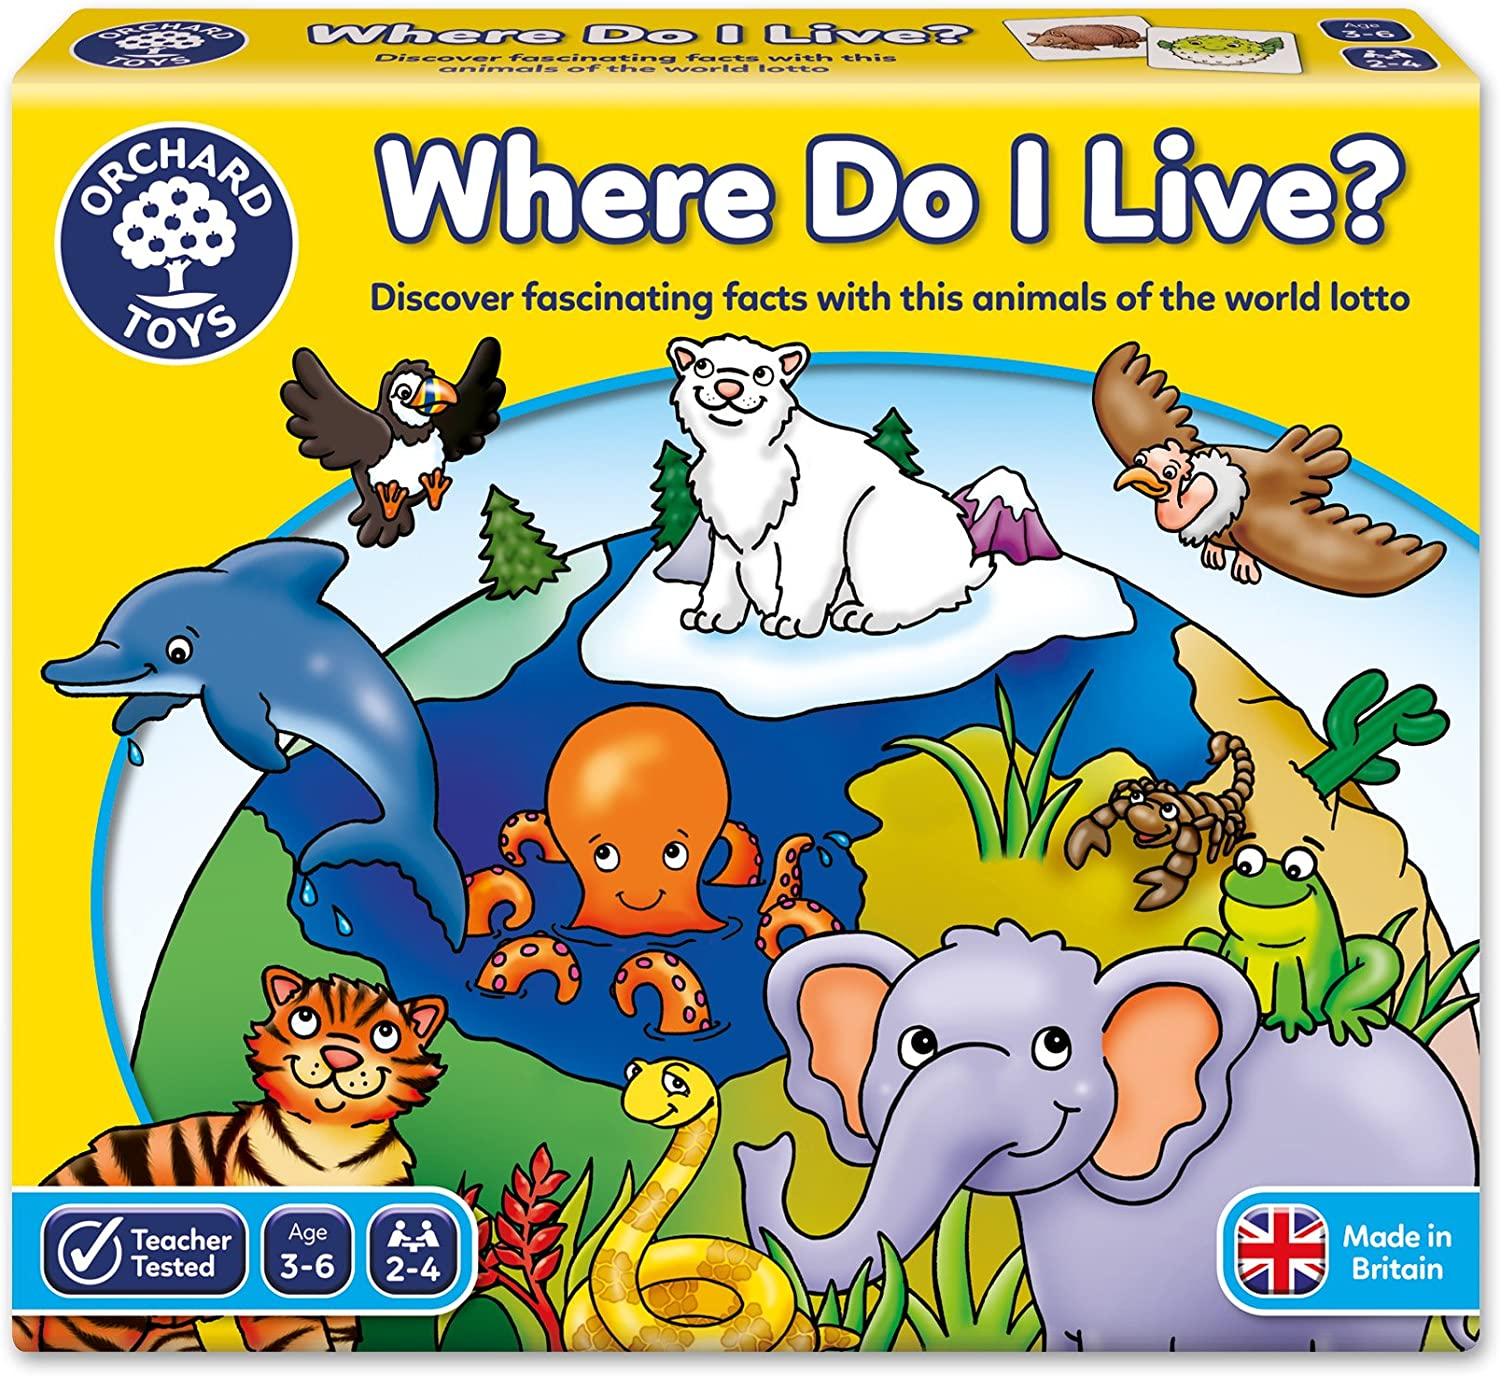 Orchard Toys Where Do I Live Game Amazon Co Uk Toys Games Live satellite view of my house. orchard toys where do i live game